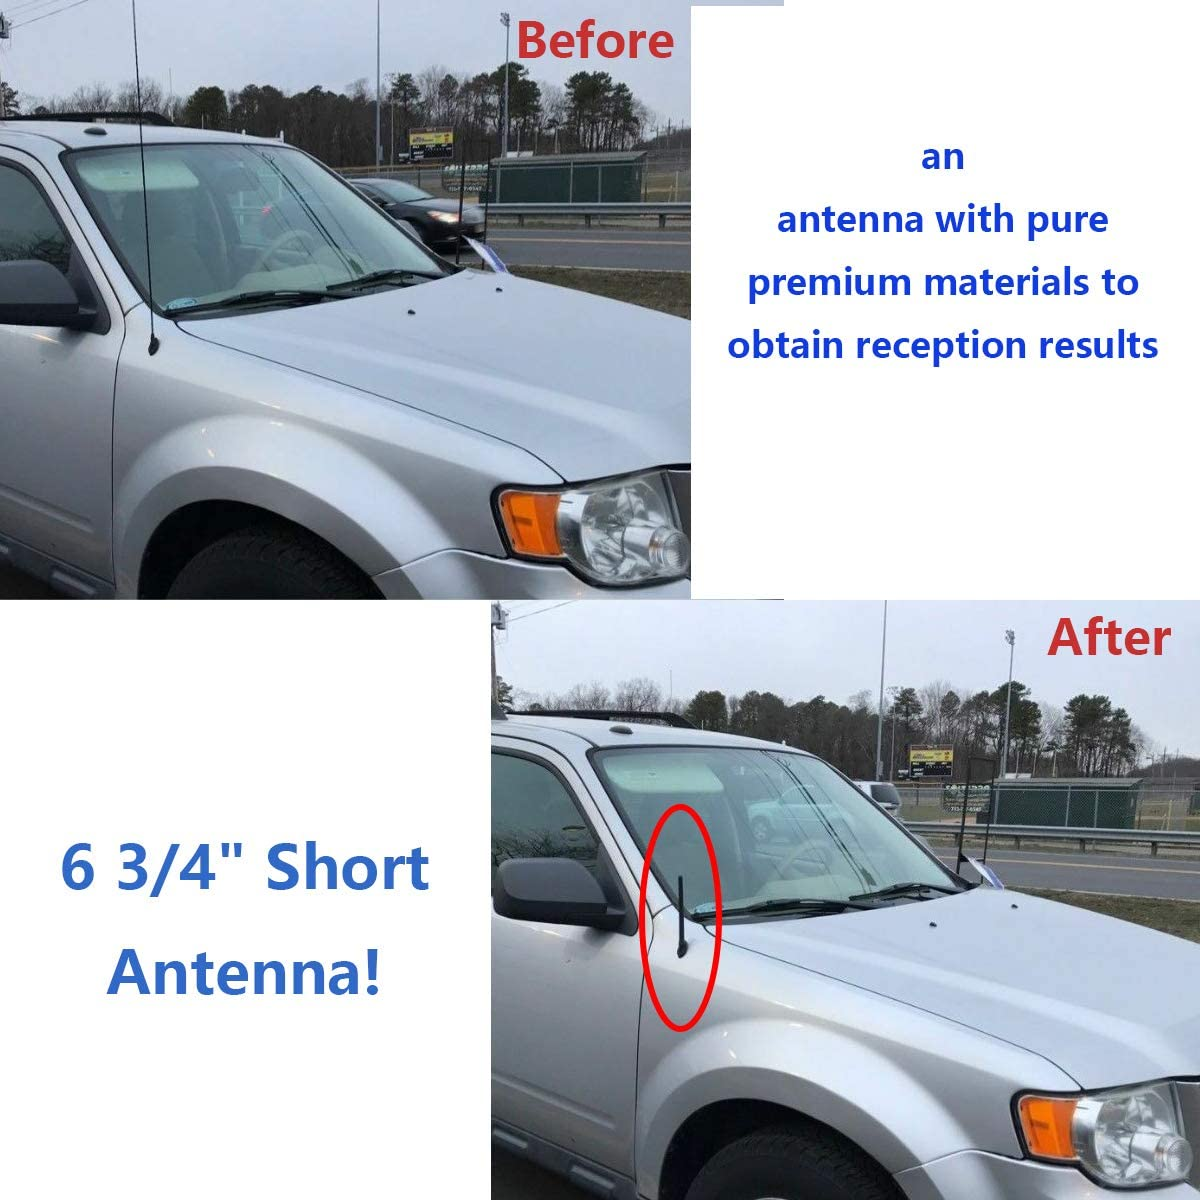 6 3//4 Inch Antenna Mast For 2009-2020 Ford F-150 Pickup Short Black Rubber Antenna(Includes 3 replaceable screws)